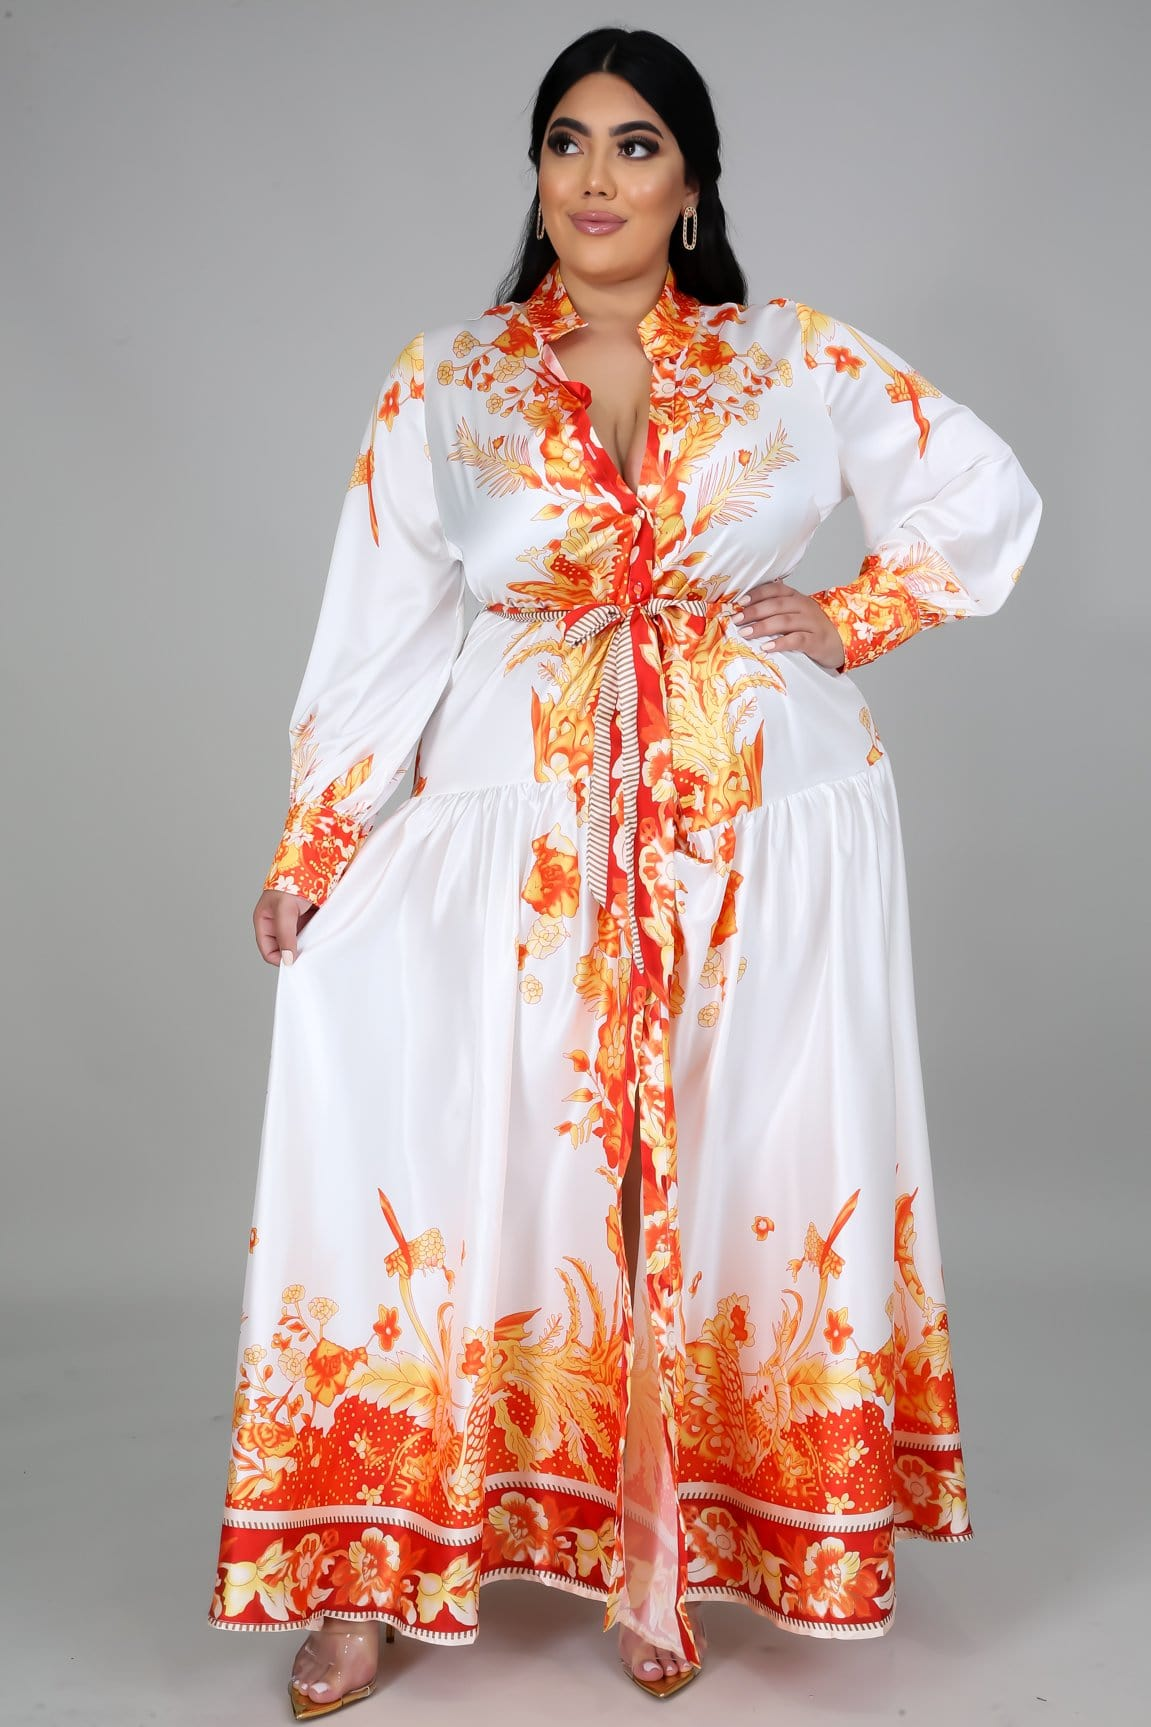 Nene Long Sleeve Maxi Dress (Curvy)